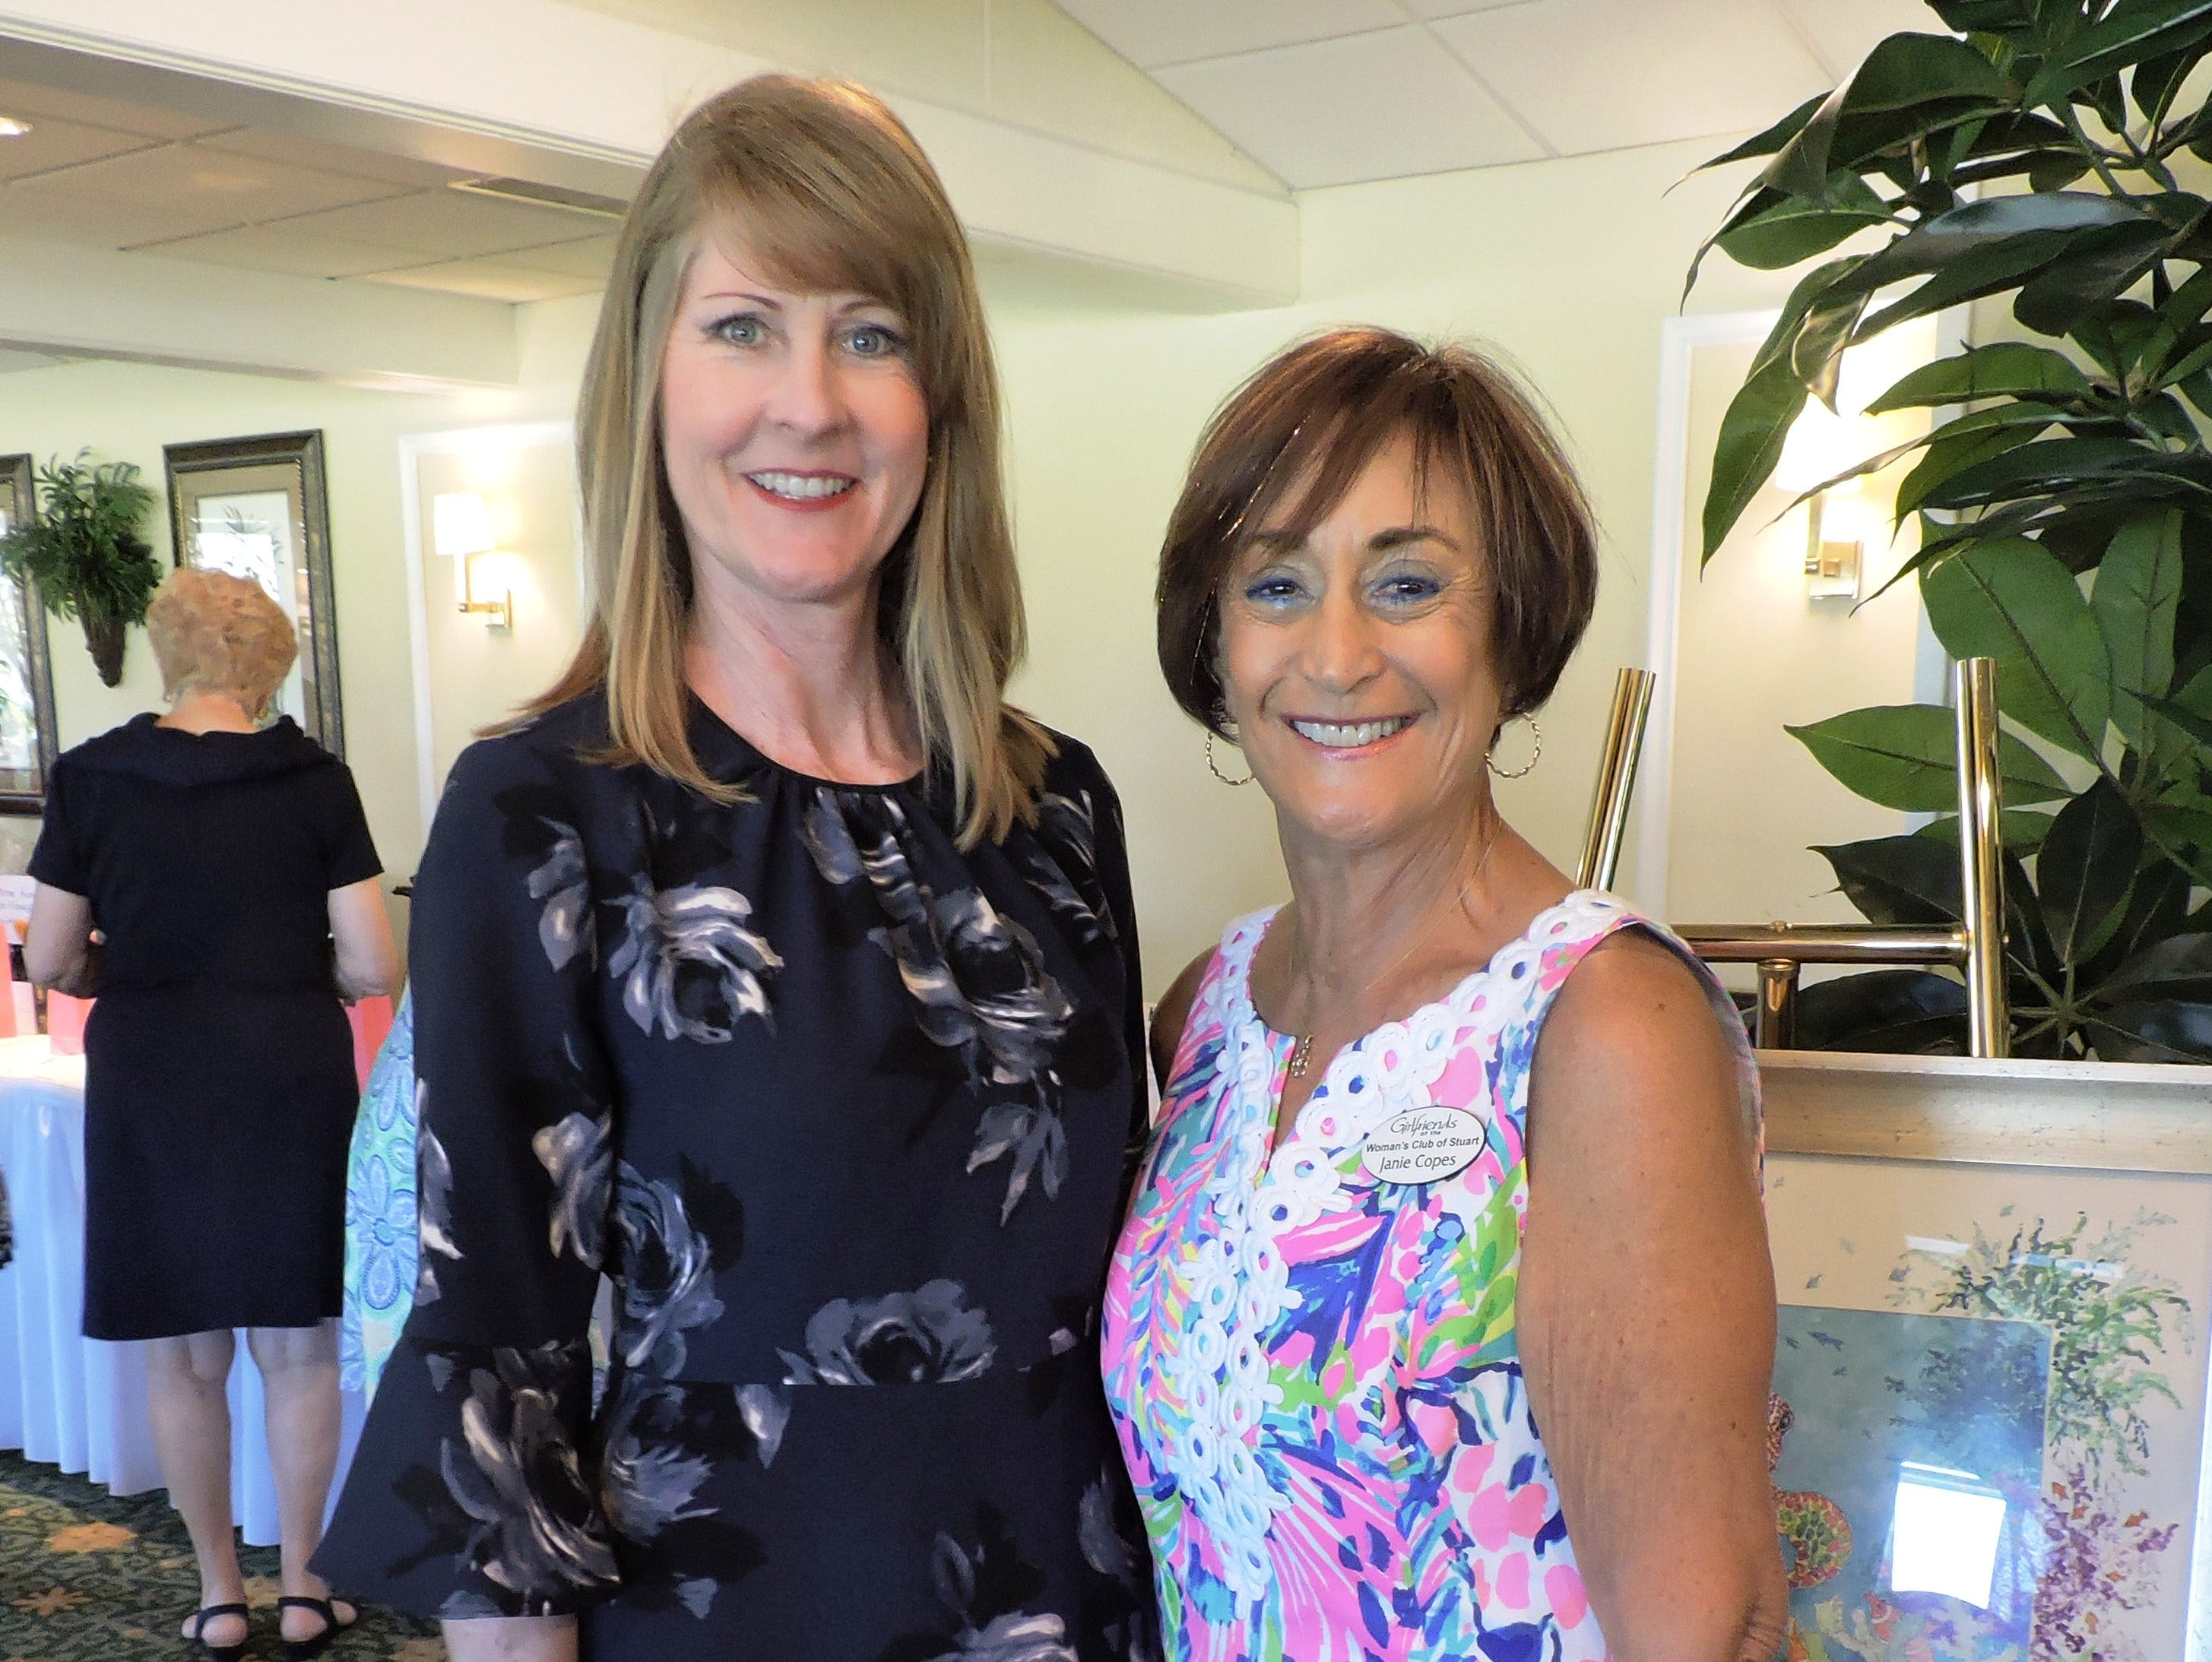 Luncheon co-chairs Tonya Axton, left, and Janie Copes at Woman's Club of Stuart annual Food, Friends and Fashion Show Feb. 23 at Mariner Sands Country Club in Stuart